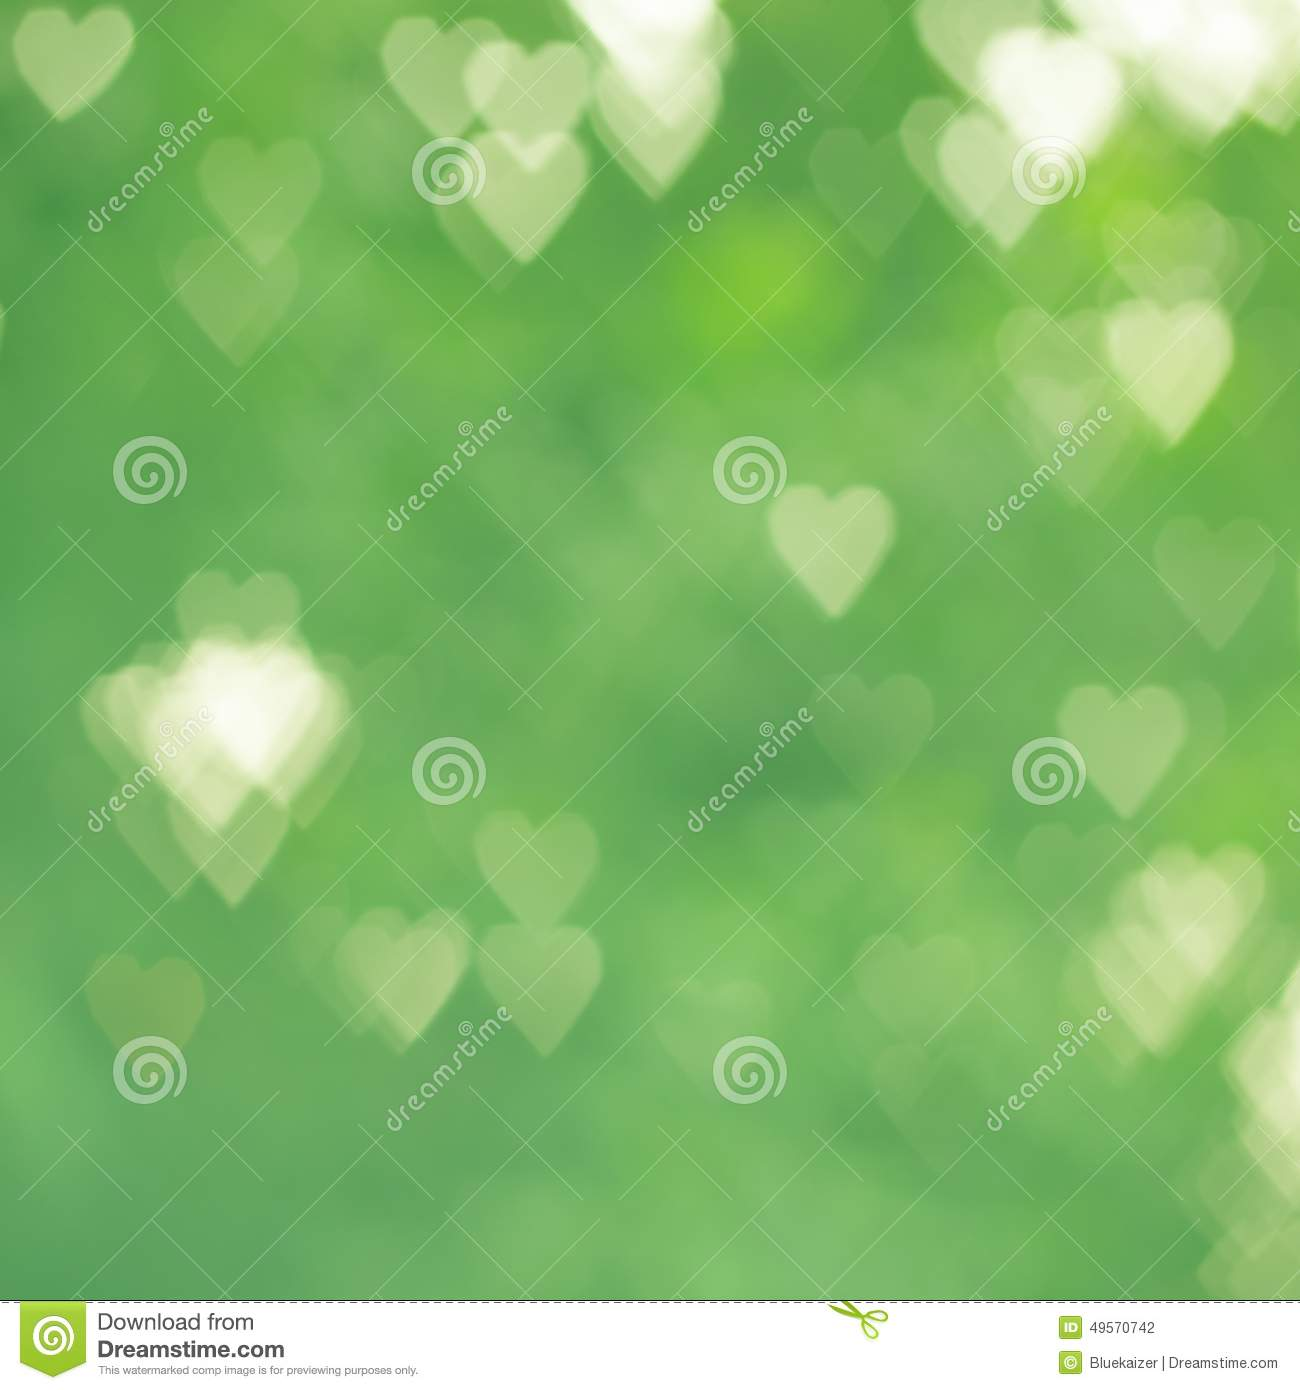 green hearts background - photo #27